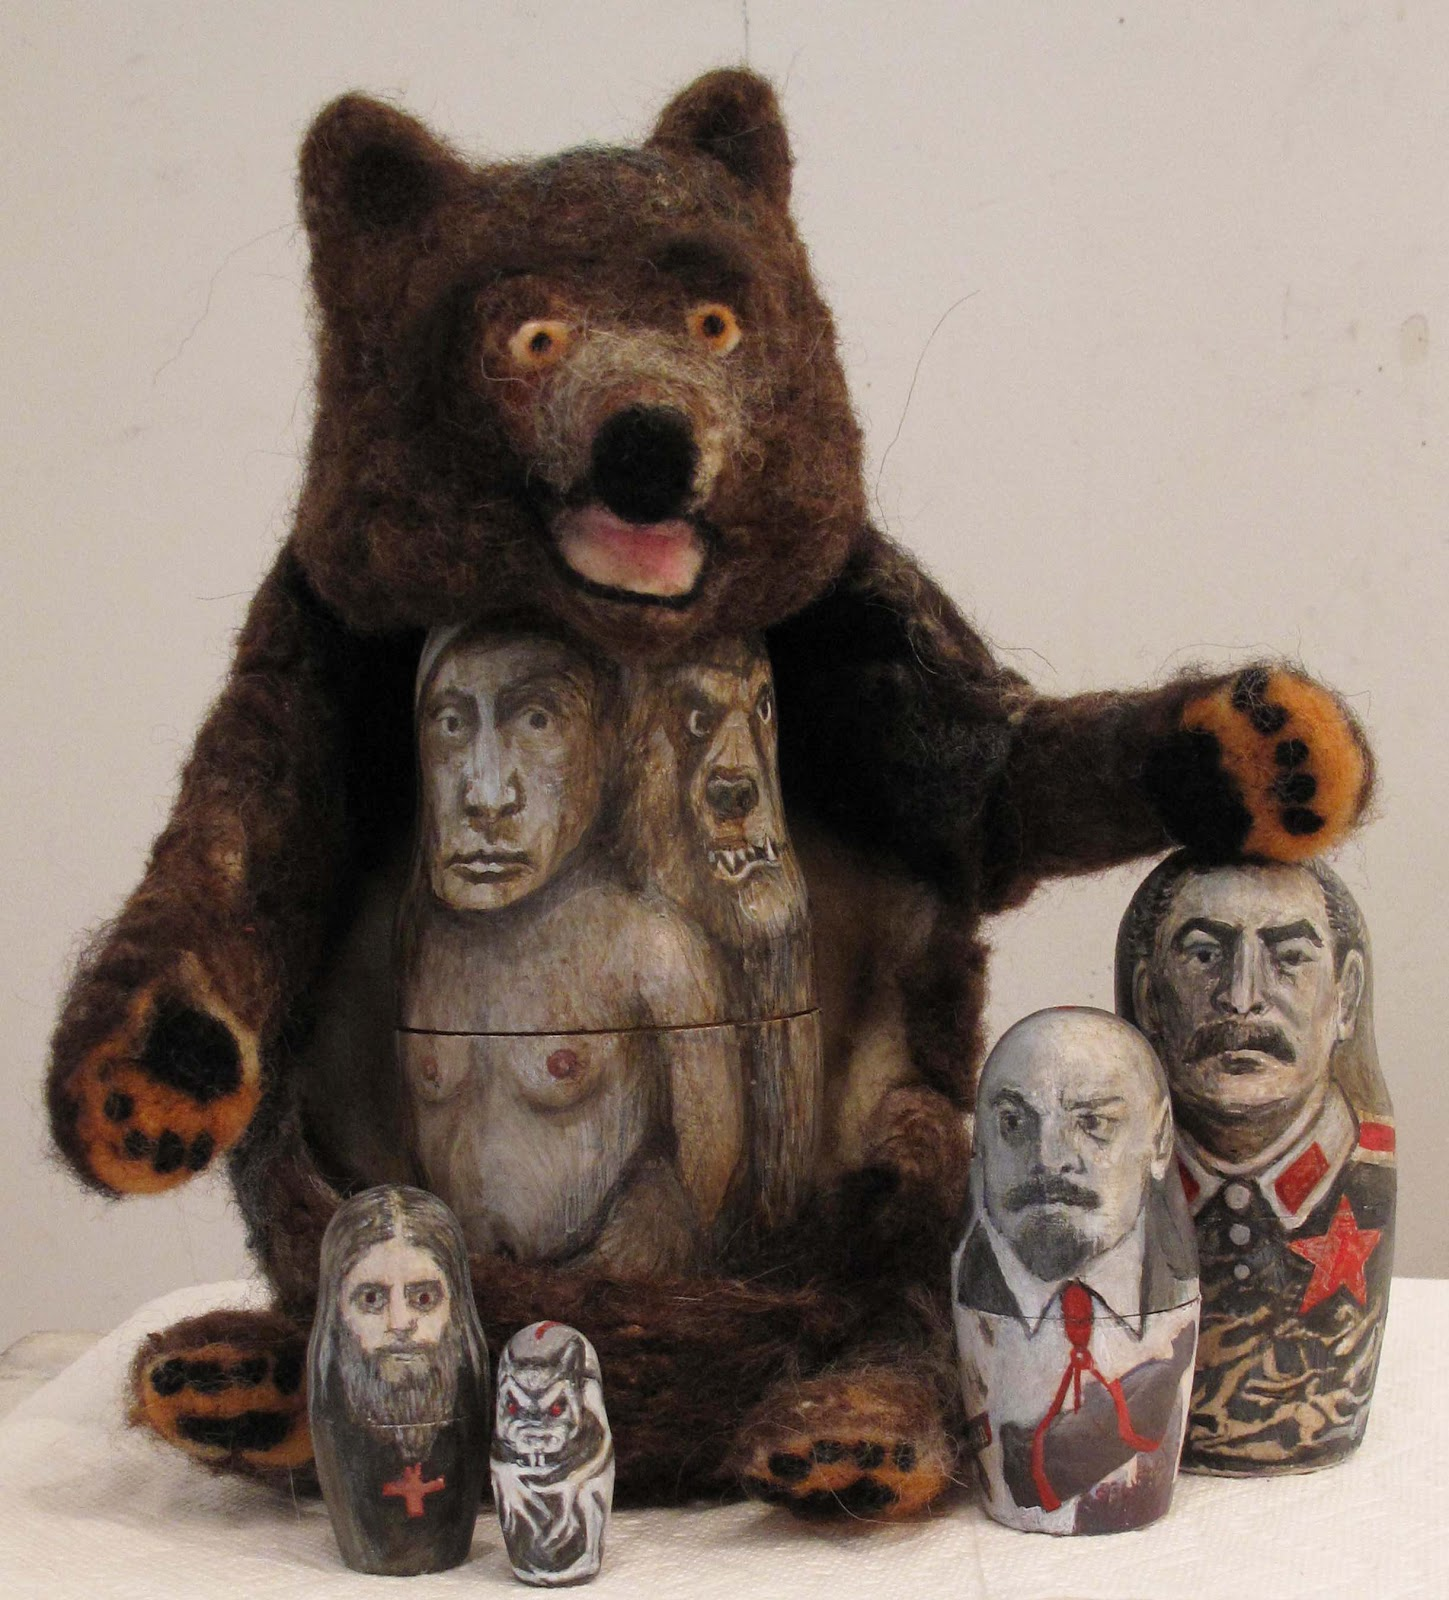 Bear (T)hugs, 2015, Lydia Bodnar-Balahutrak. Felted bear, 5 painted wooden nesting dolls. 10 x 14 x 6 inches.